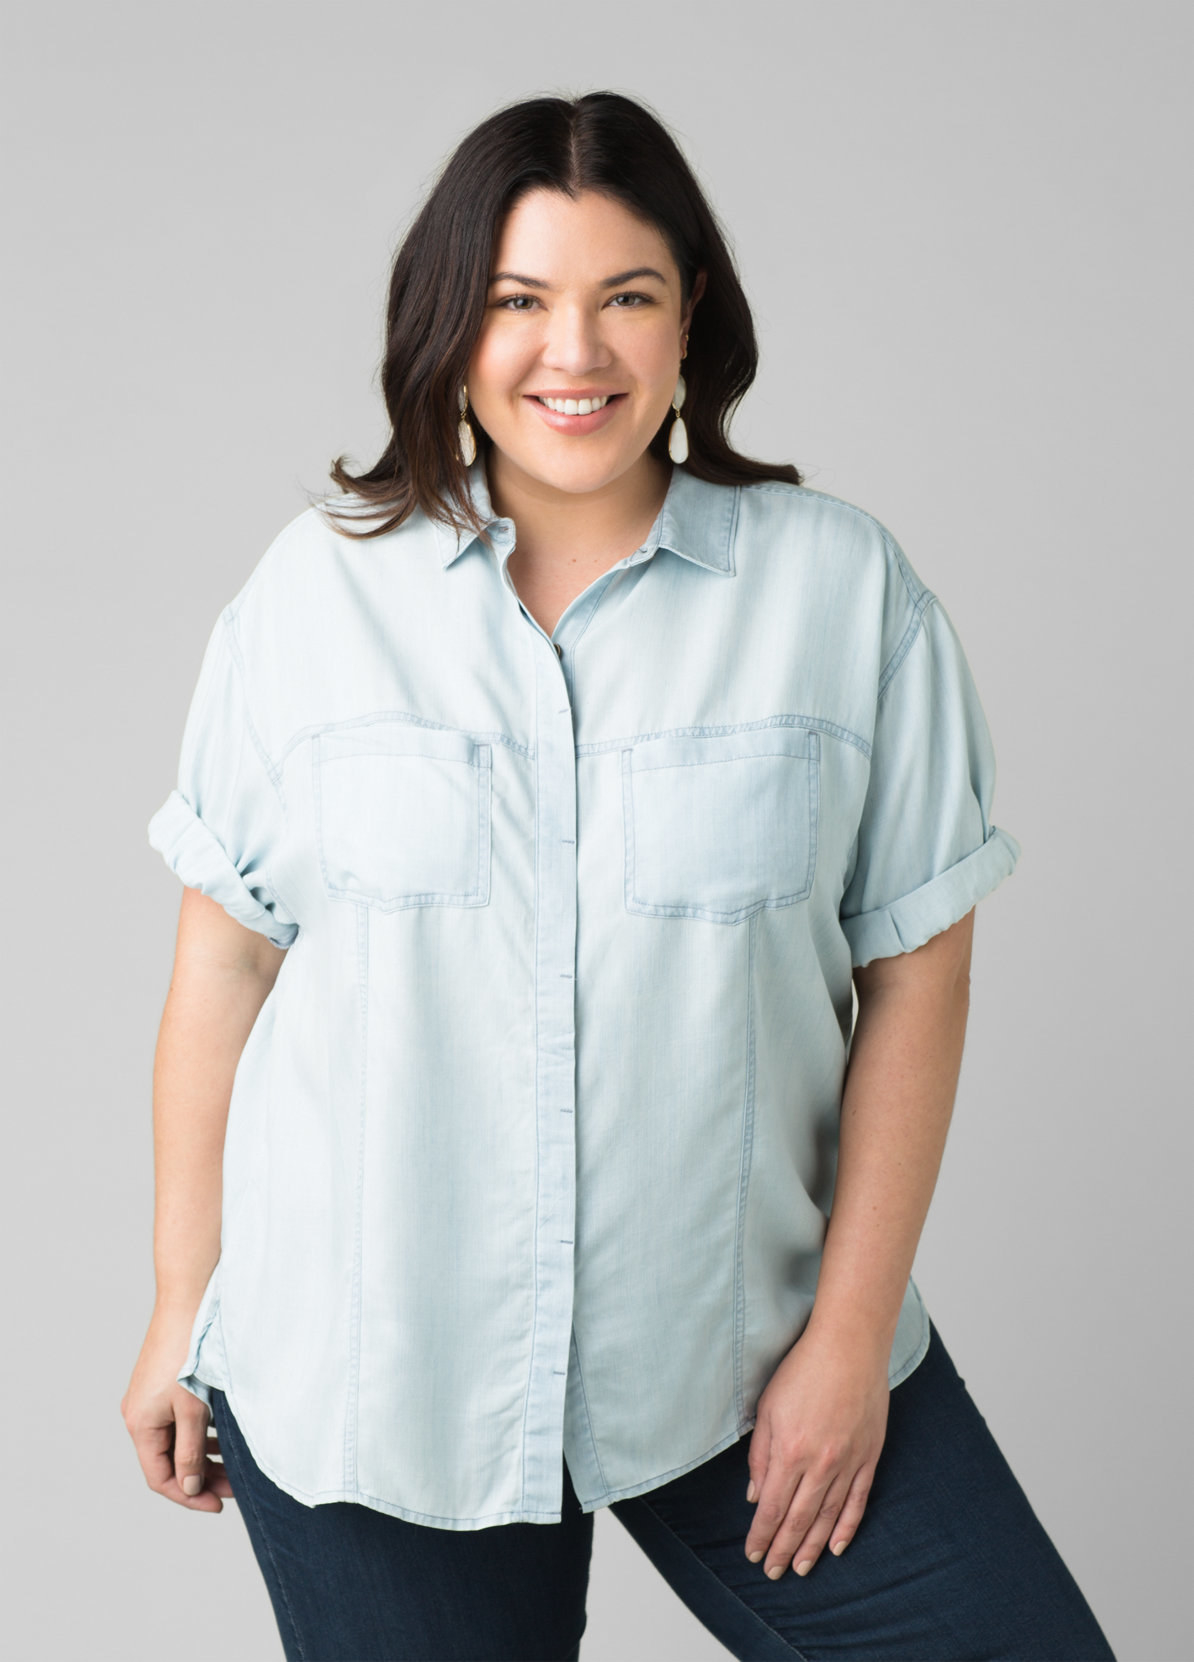 model in the collared shirt